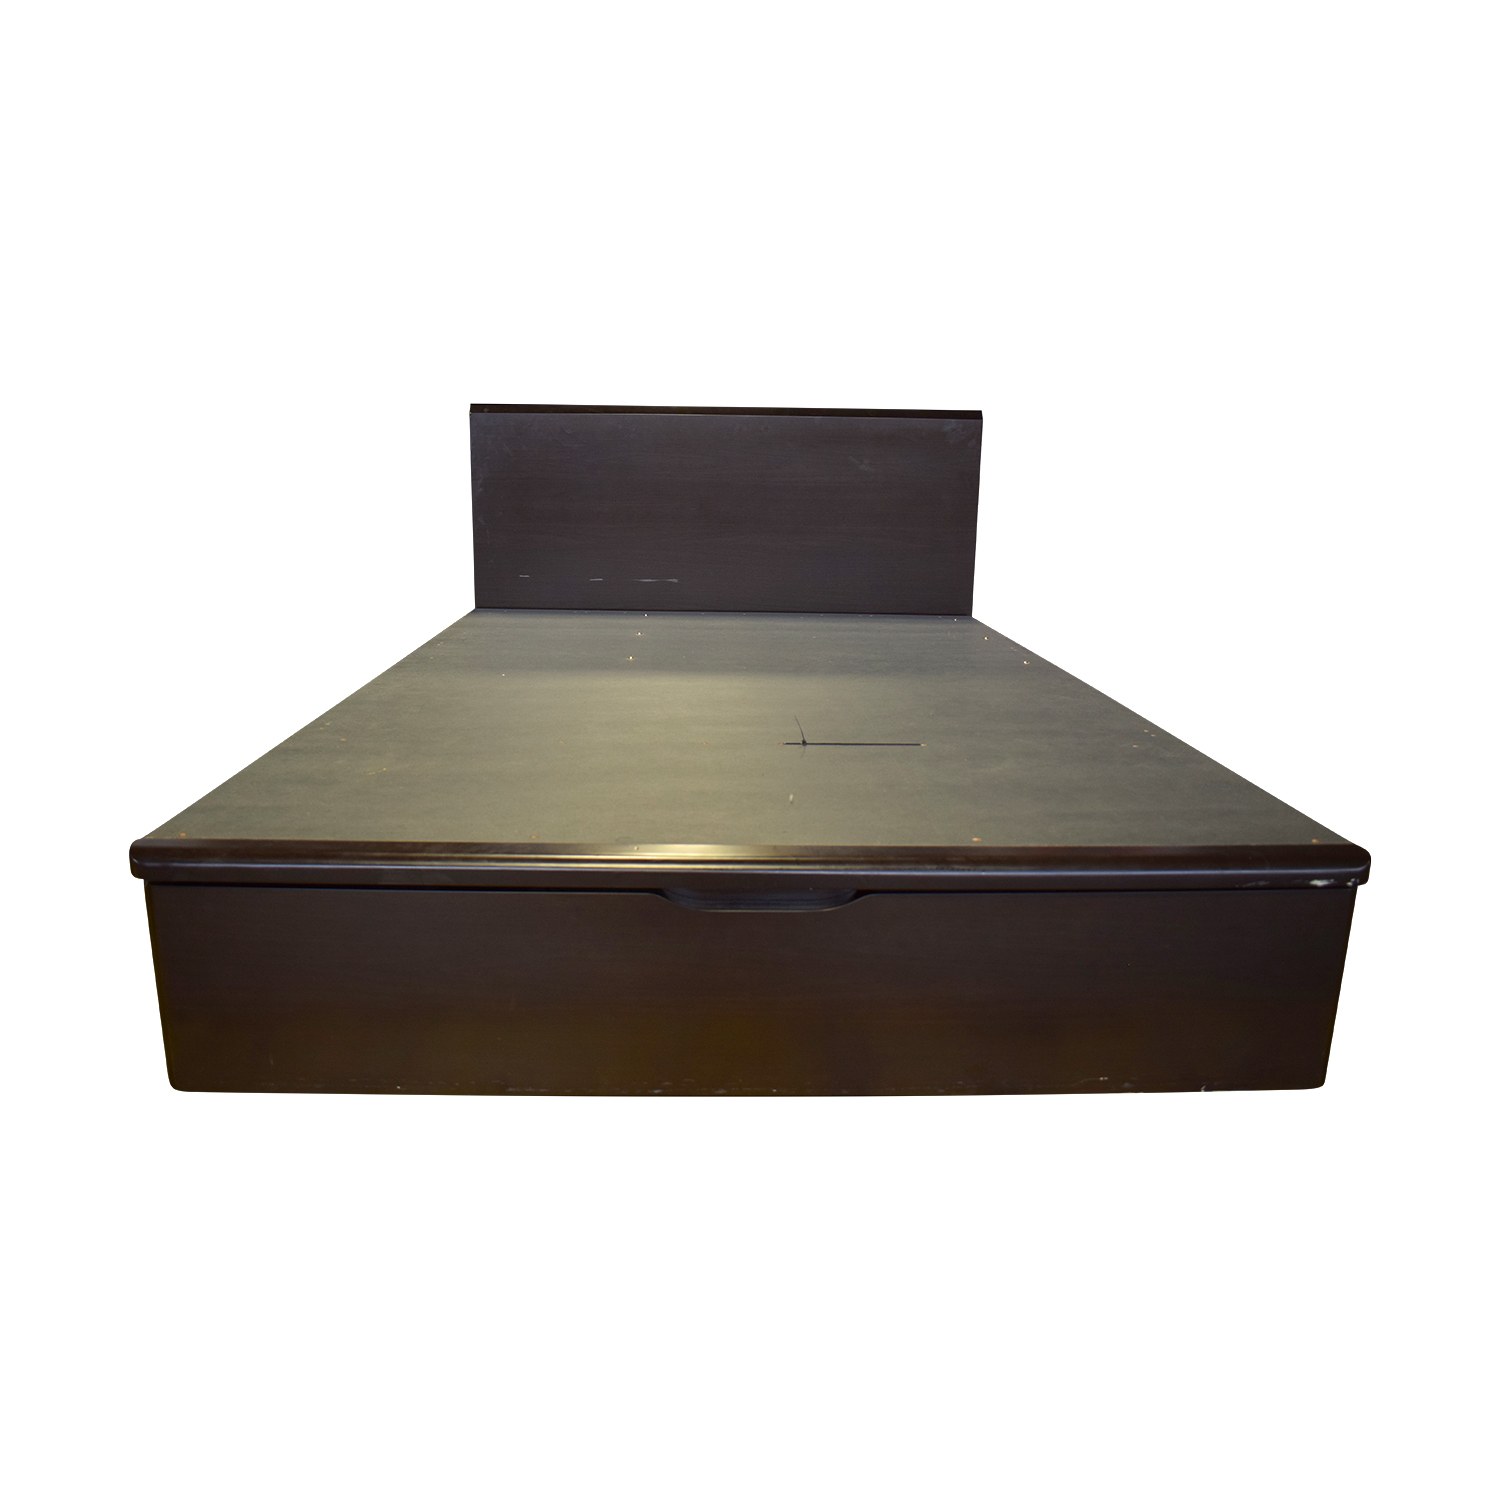 Full Size Lift Storage Platform Bed coupon